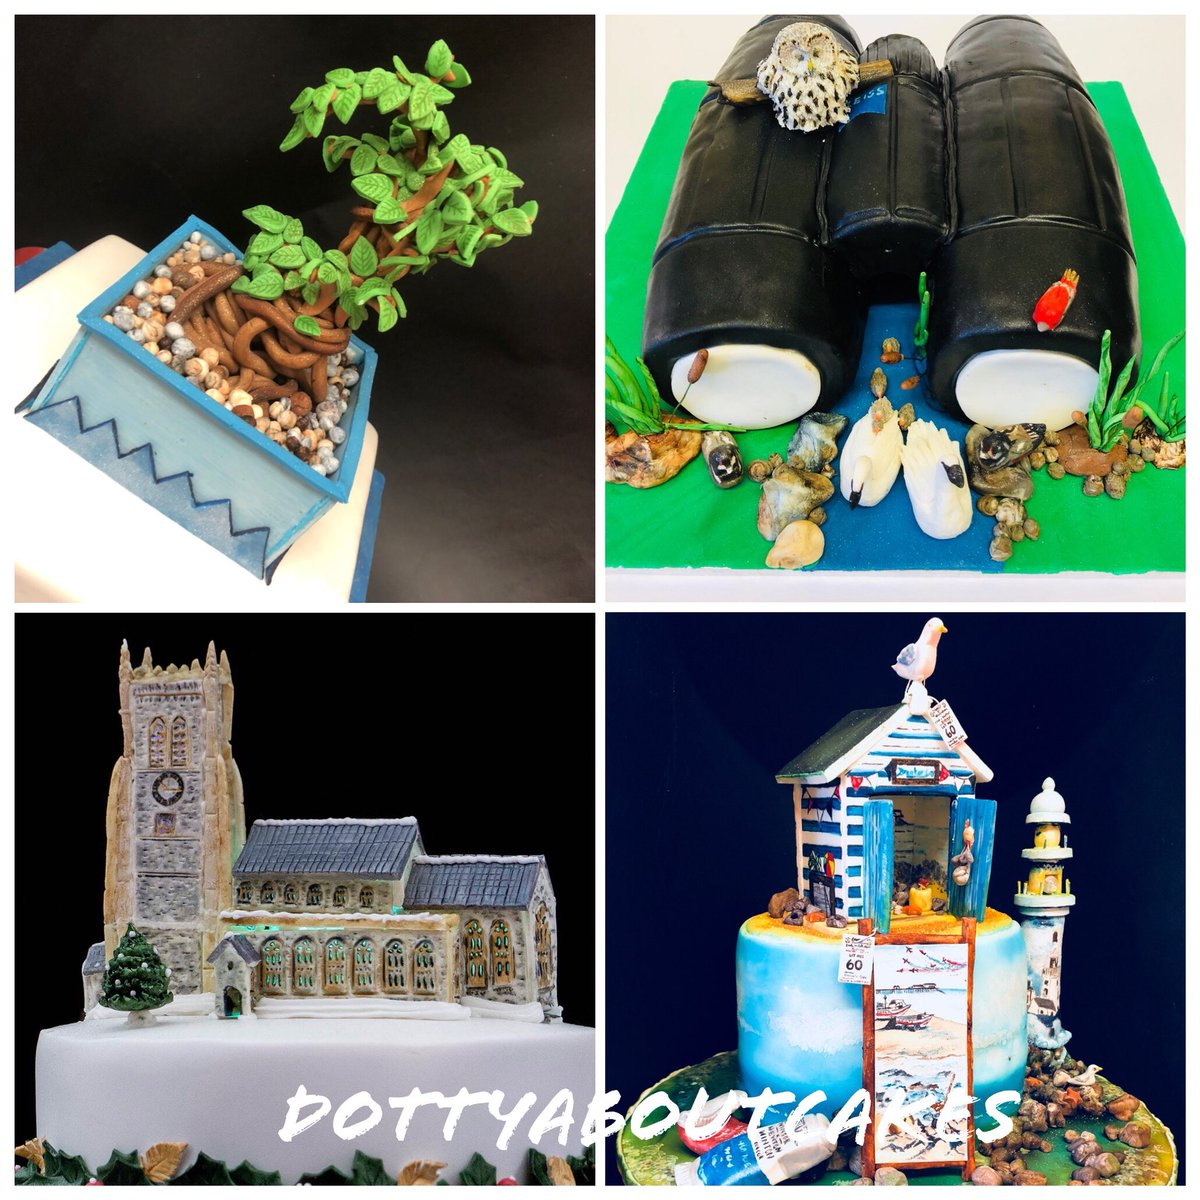 So here's Dottys first ever tweet.... Introducing my new #cake and #cookie business based near #Cromer #Norfolk.....If you're as #DottyAboutCakes as I am ...Please follow me on my journey as a #cakeartist...A few examples of my #cakedesigns below😊🎂http://bit.ly/2CXFsnz